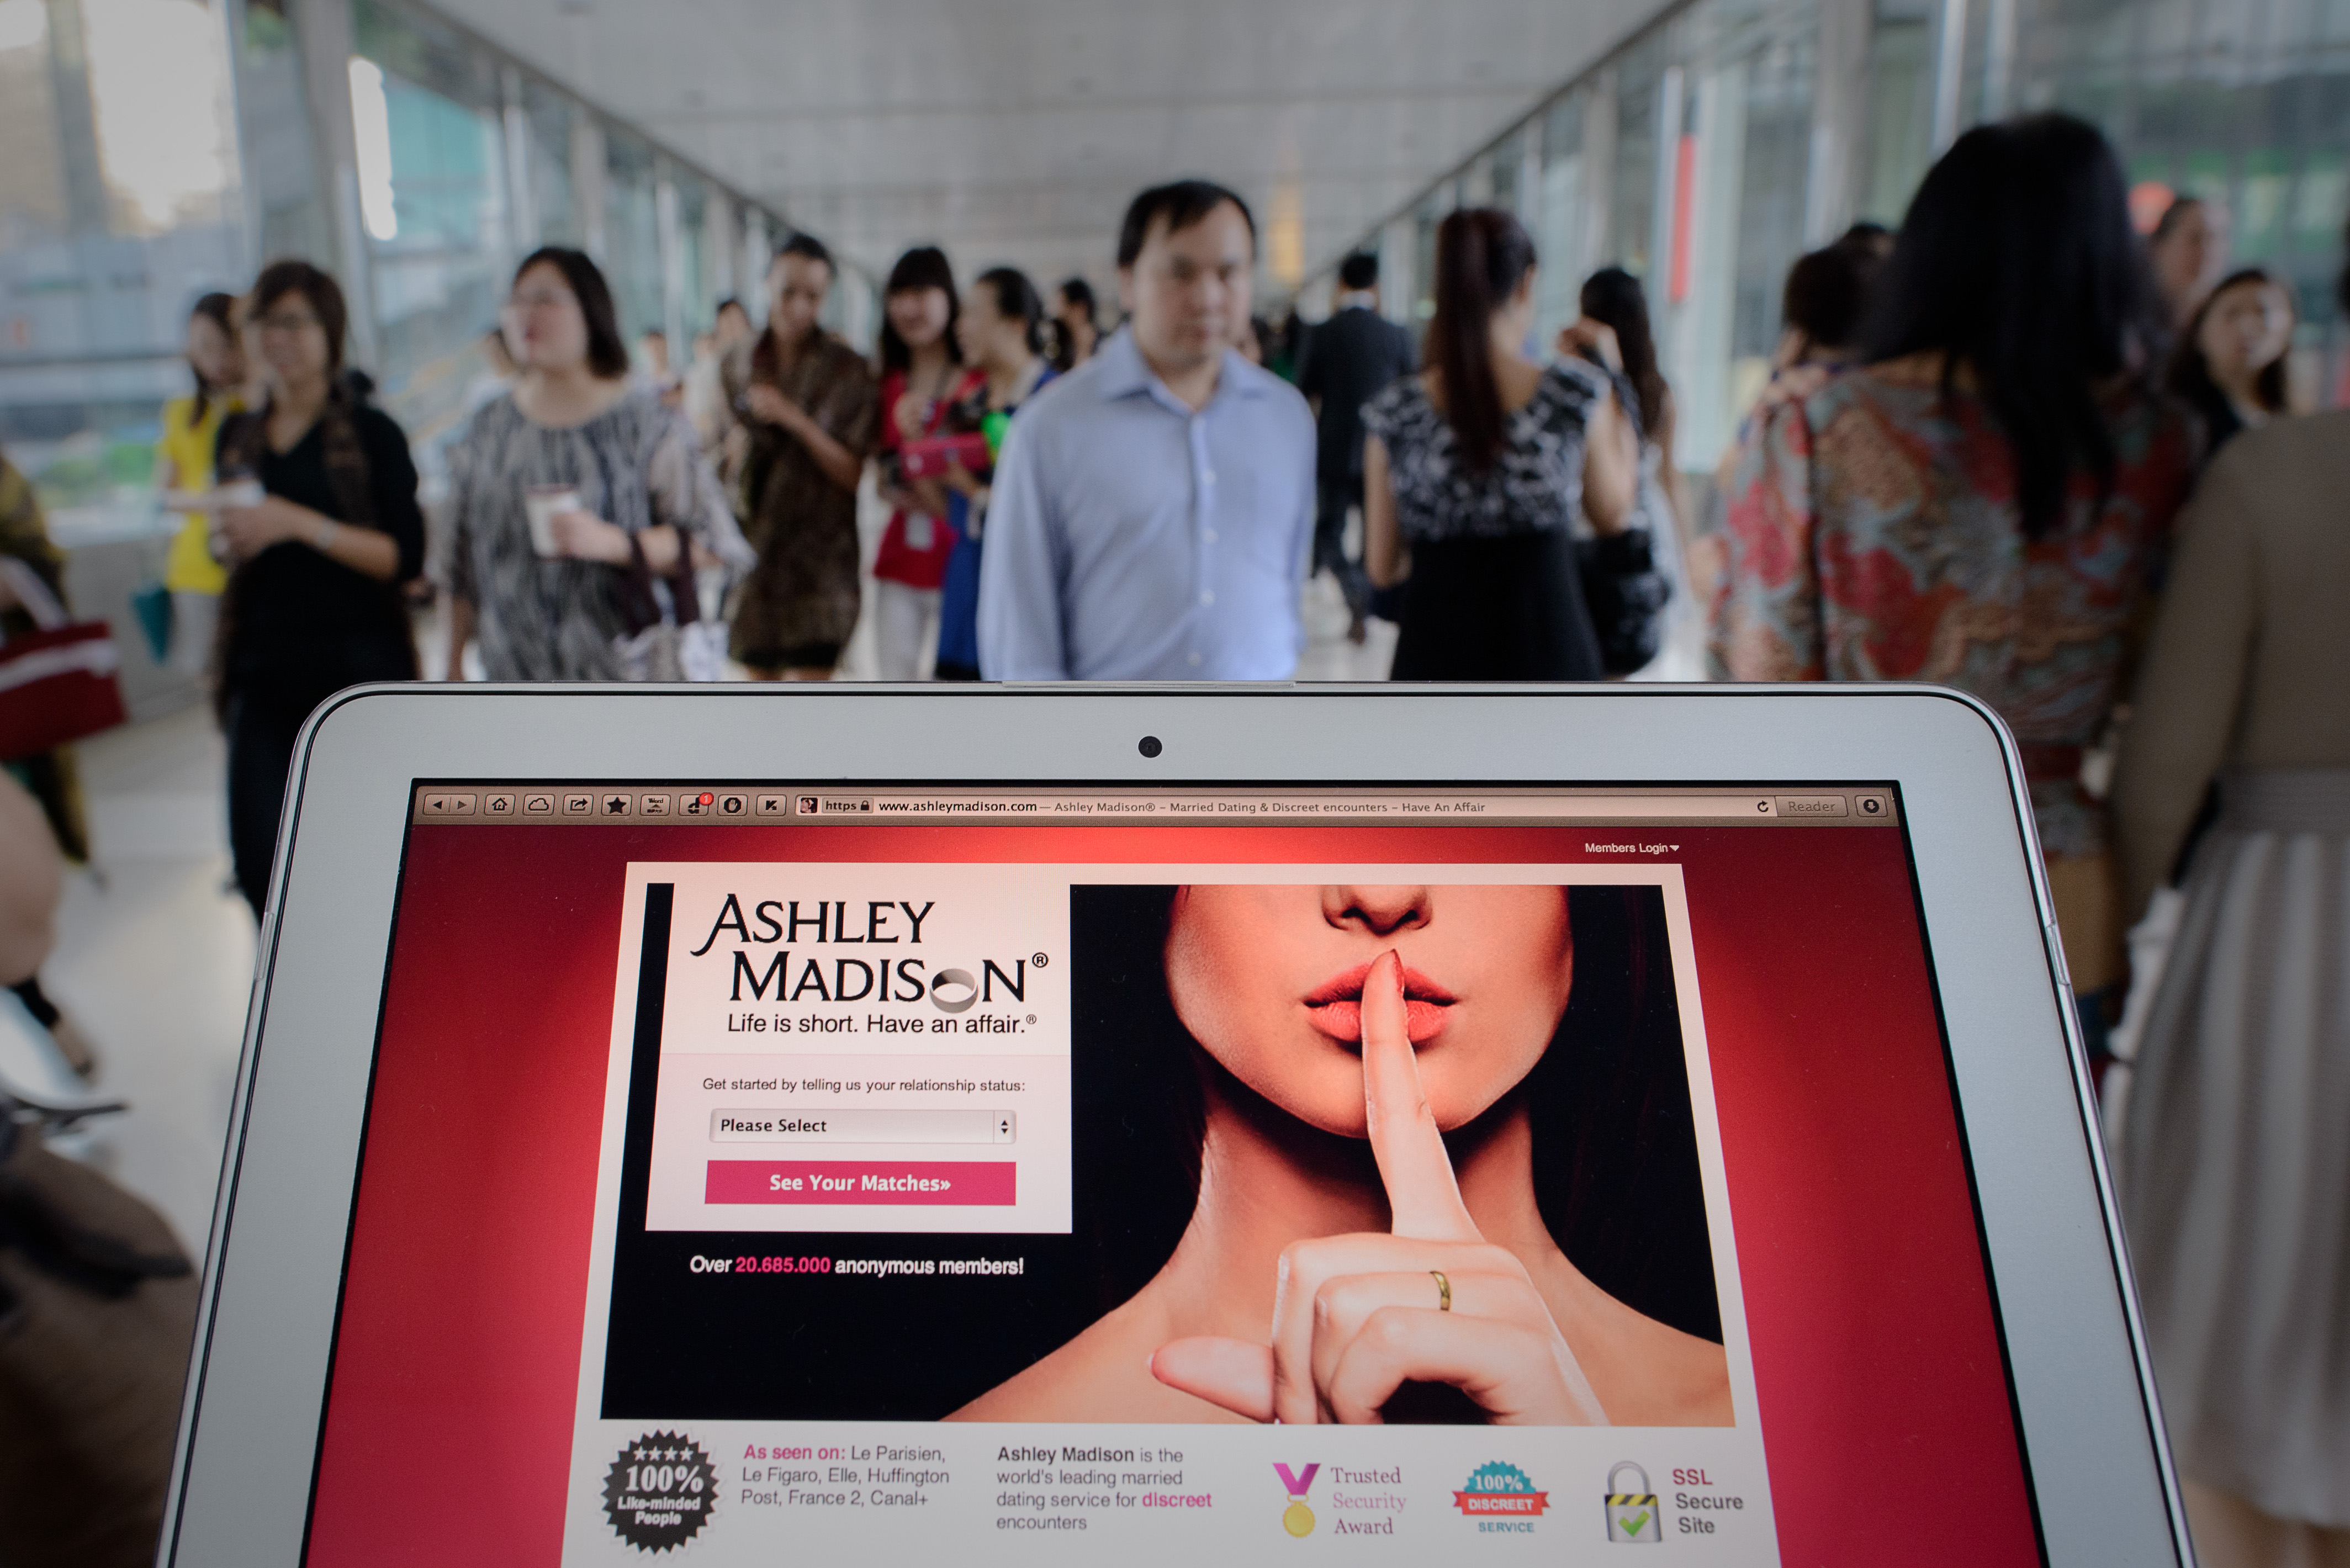 The Ashley Madison website. PHILIPPE LOPEZ/AFP via Getty Images)